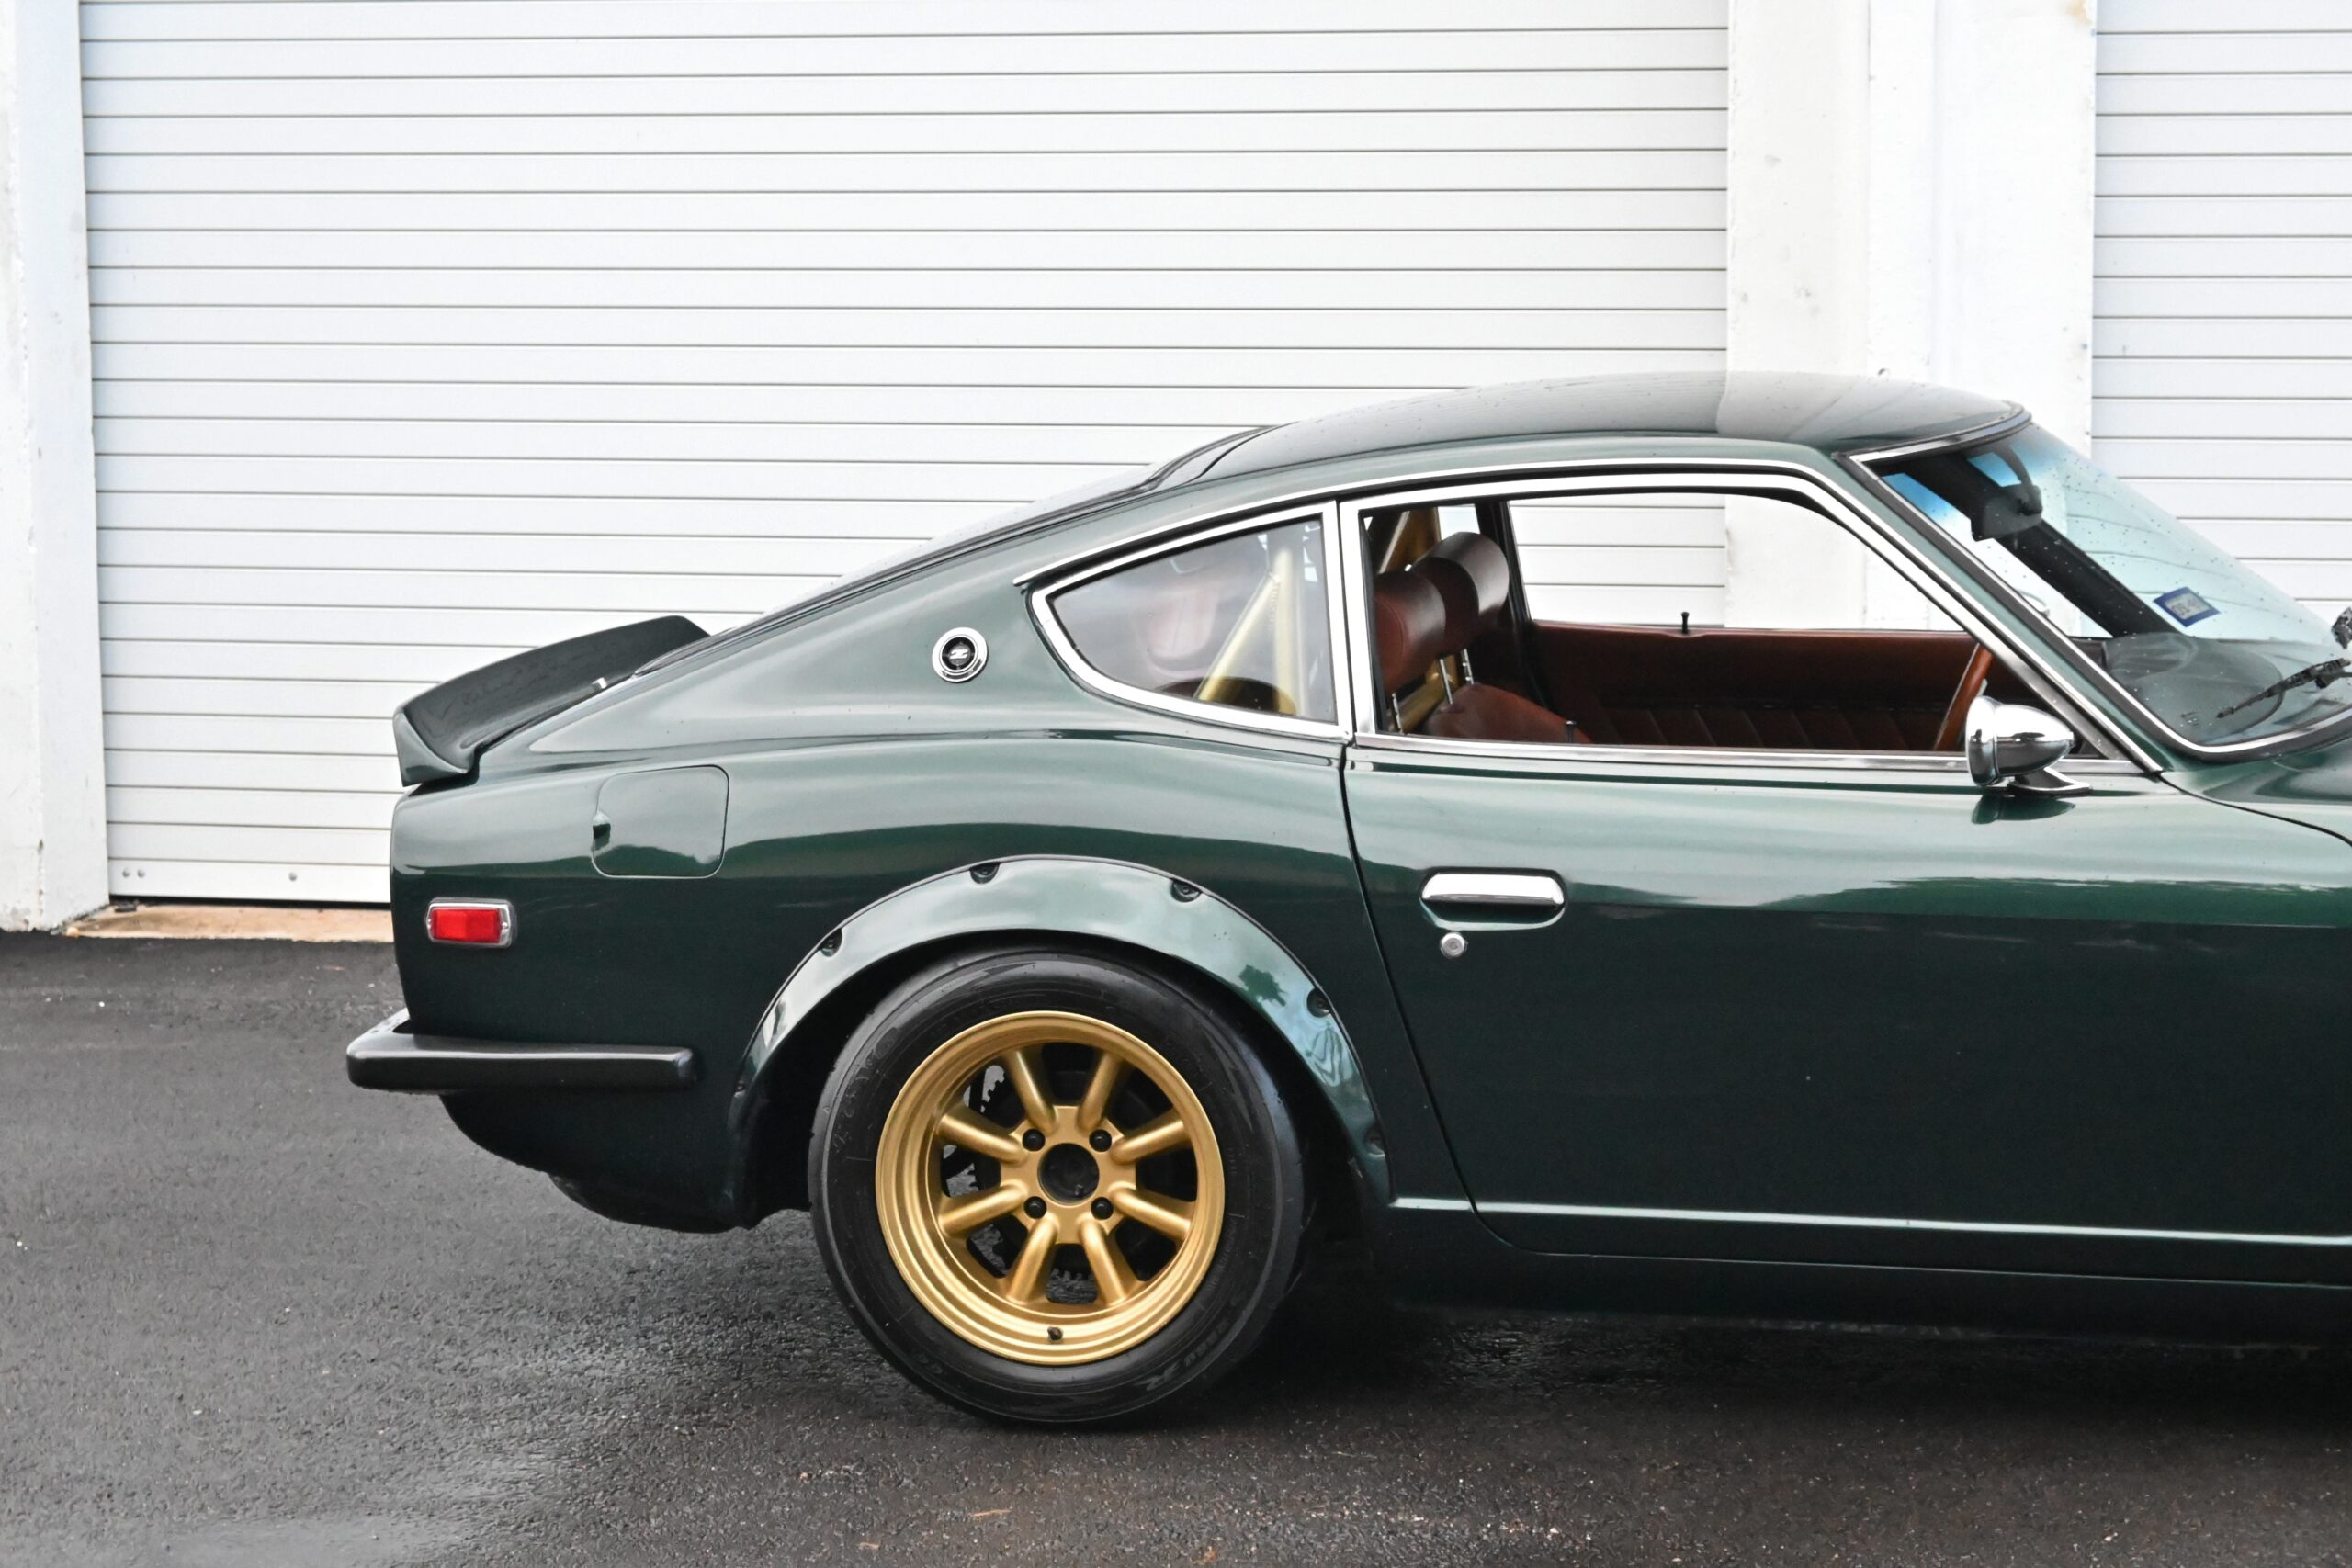 1977 Datsun 280Z 5 Speed Manual -Vintage Bucket Seats- Half Cage- Adjustable Suspension- Cold AC